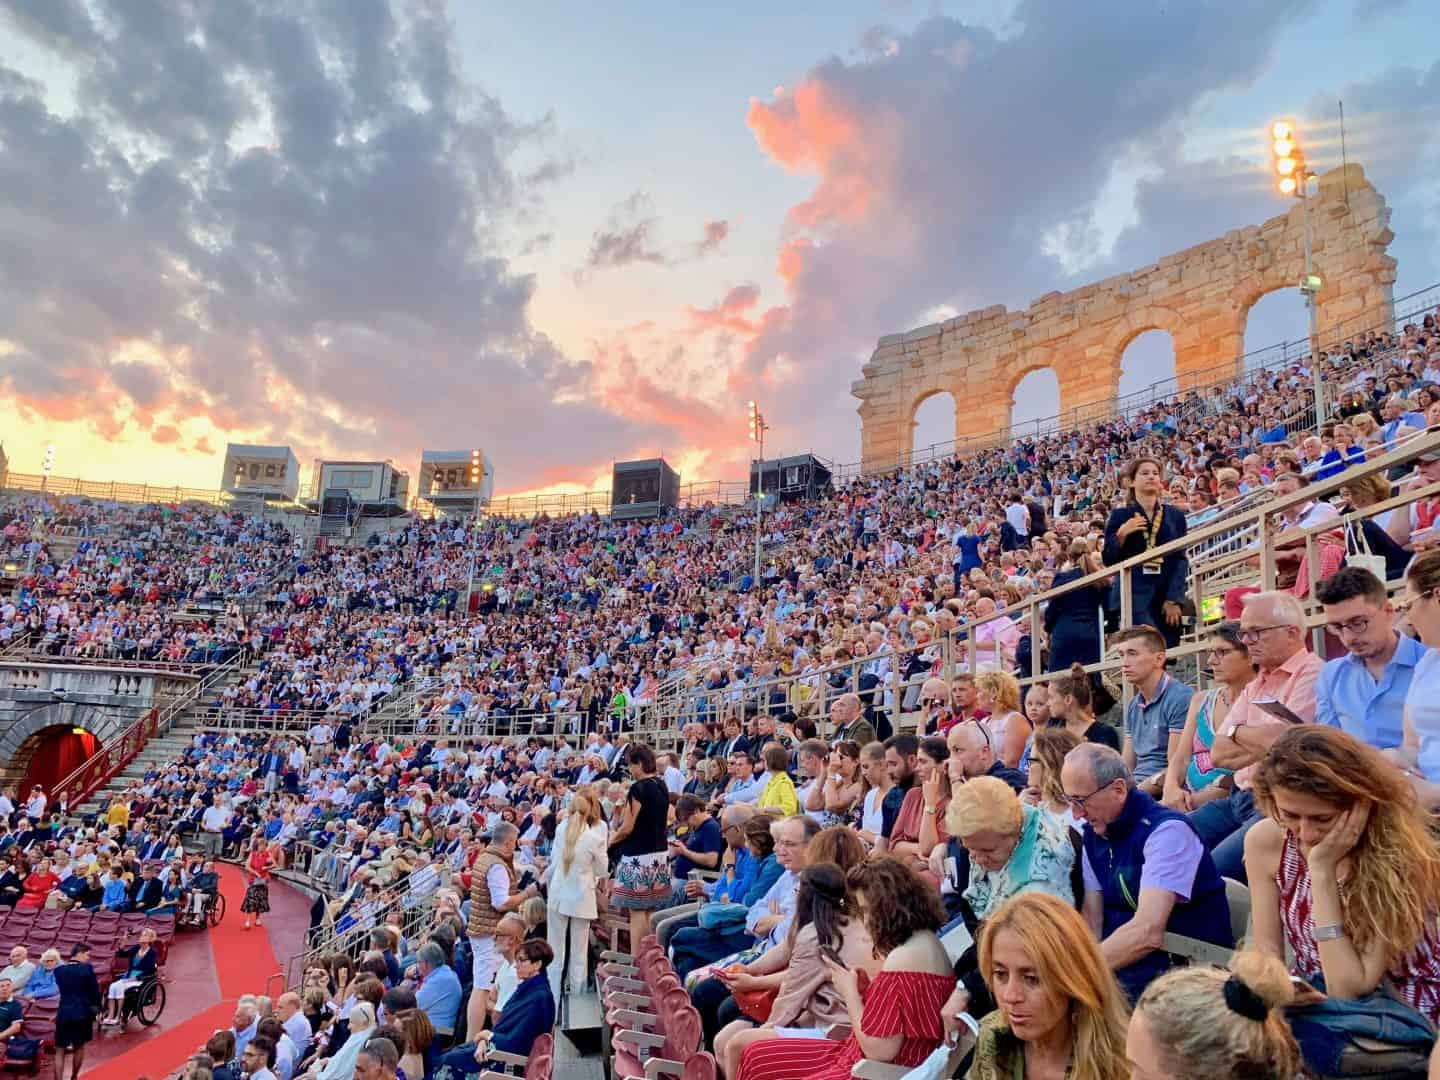 Opera in Verona - one of the best things to do in Italy